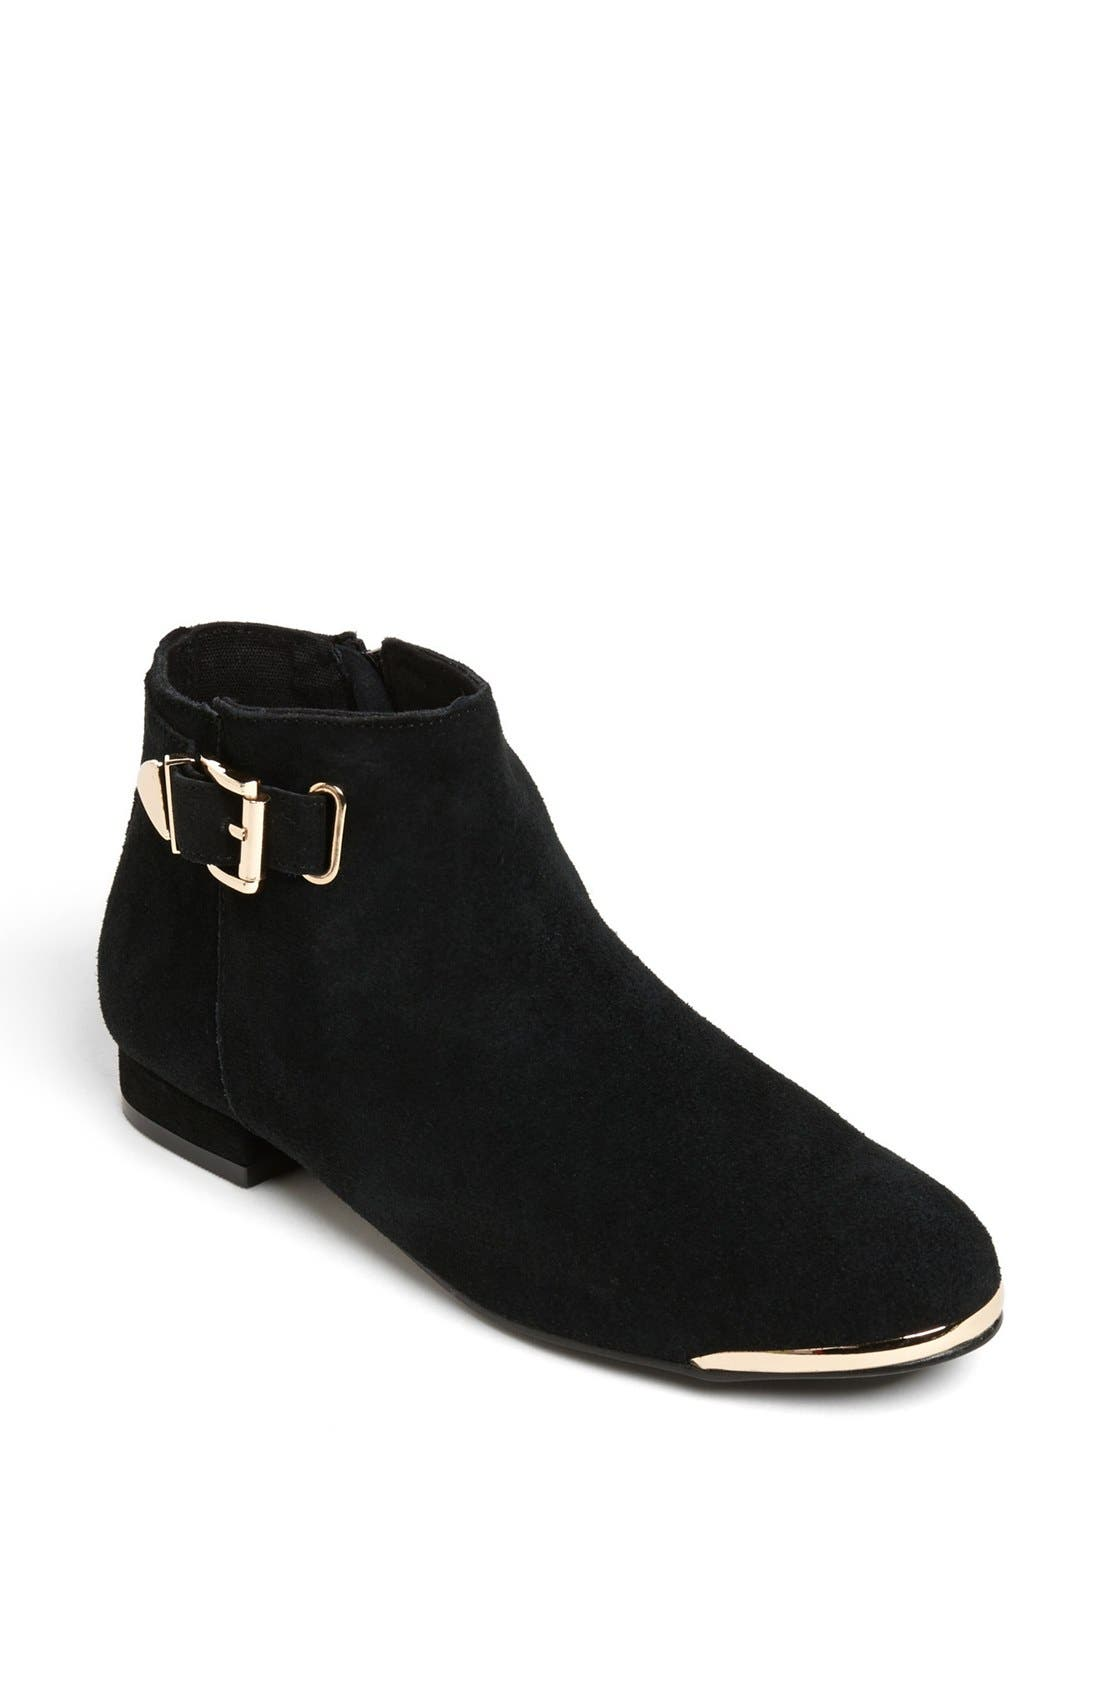 Alternate Image 1 Selected - Topshop 'Mam' Studded Bootie